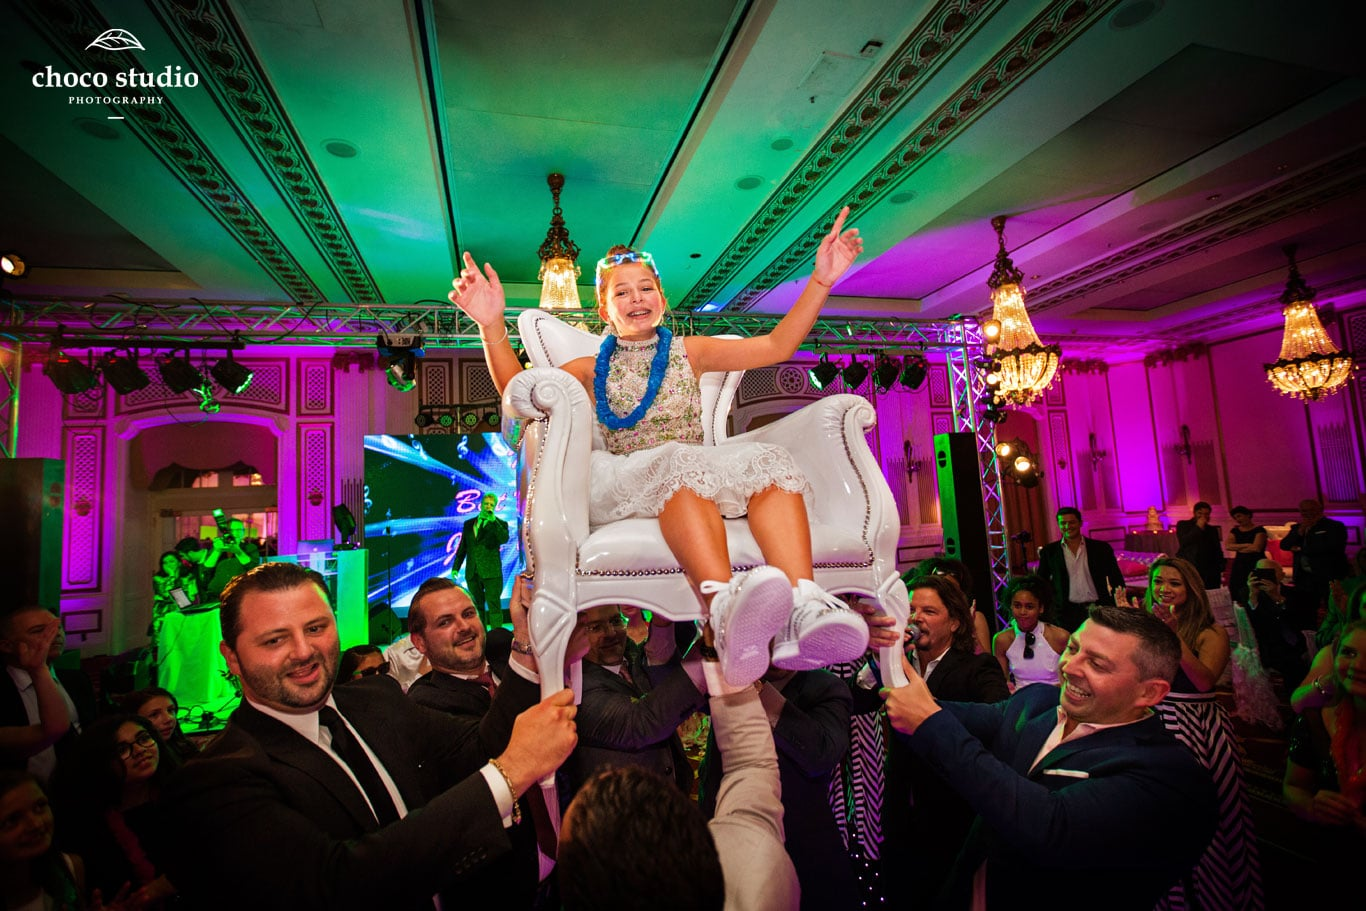 Palace Hotel Bat Mitzvah Horah Dancing with Chair